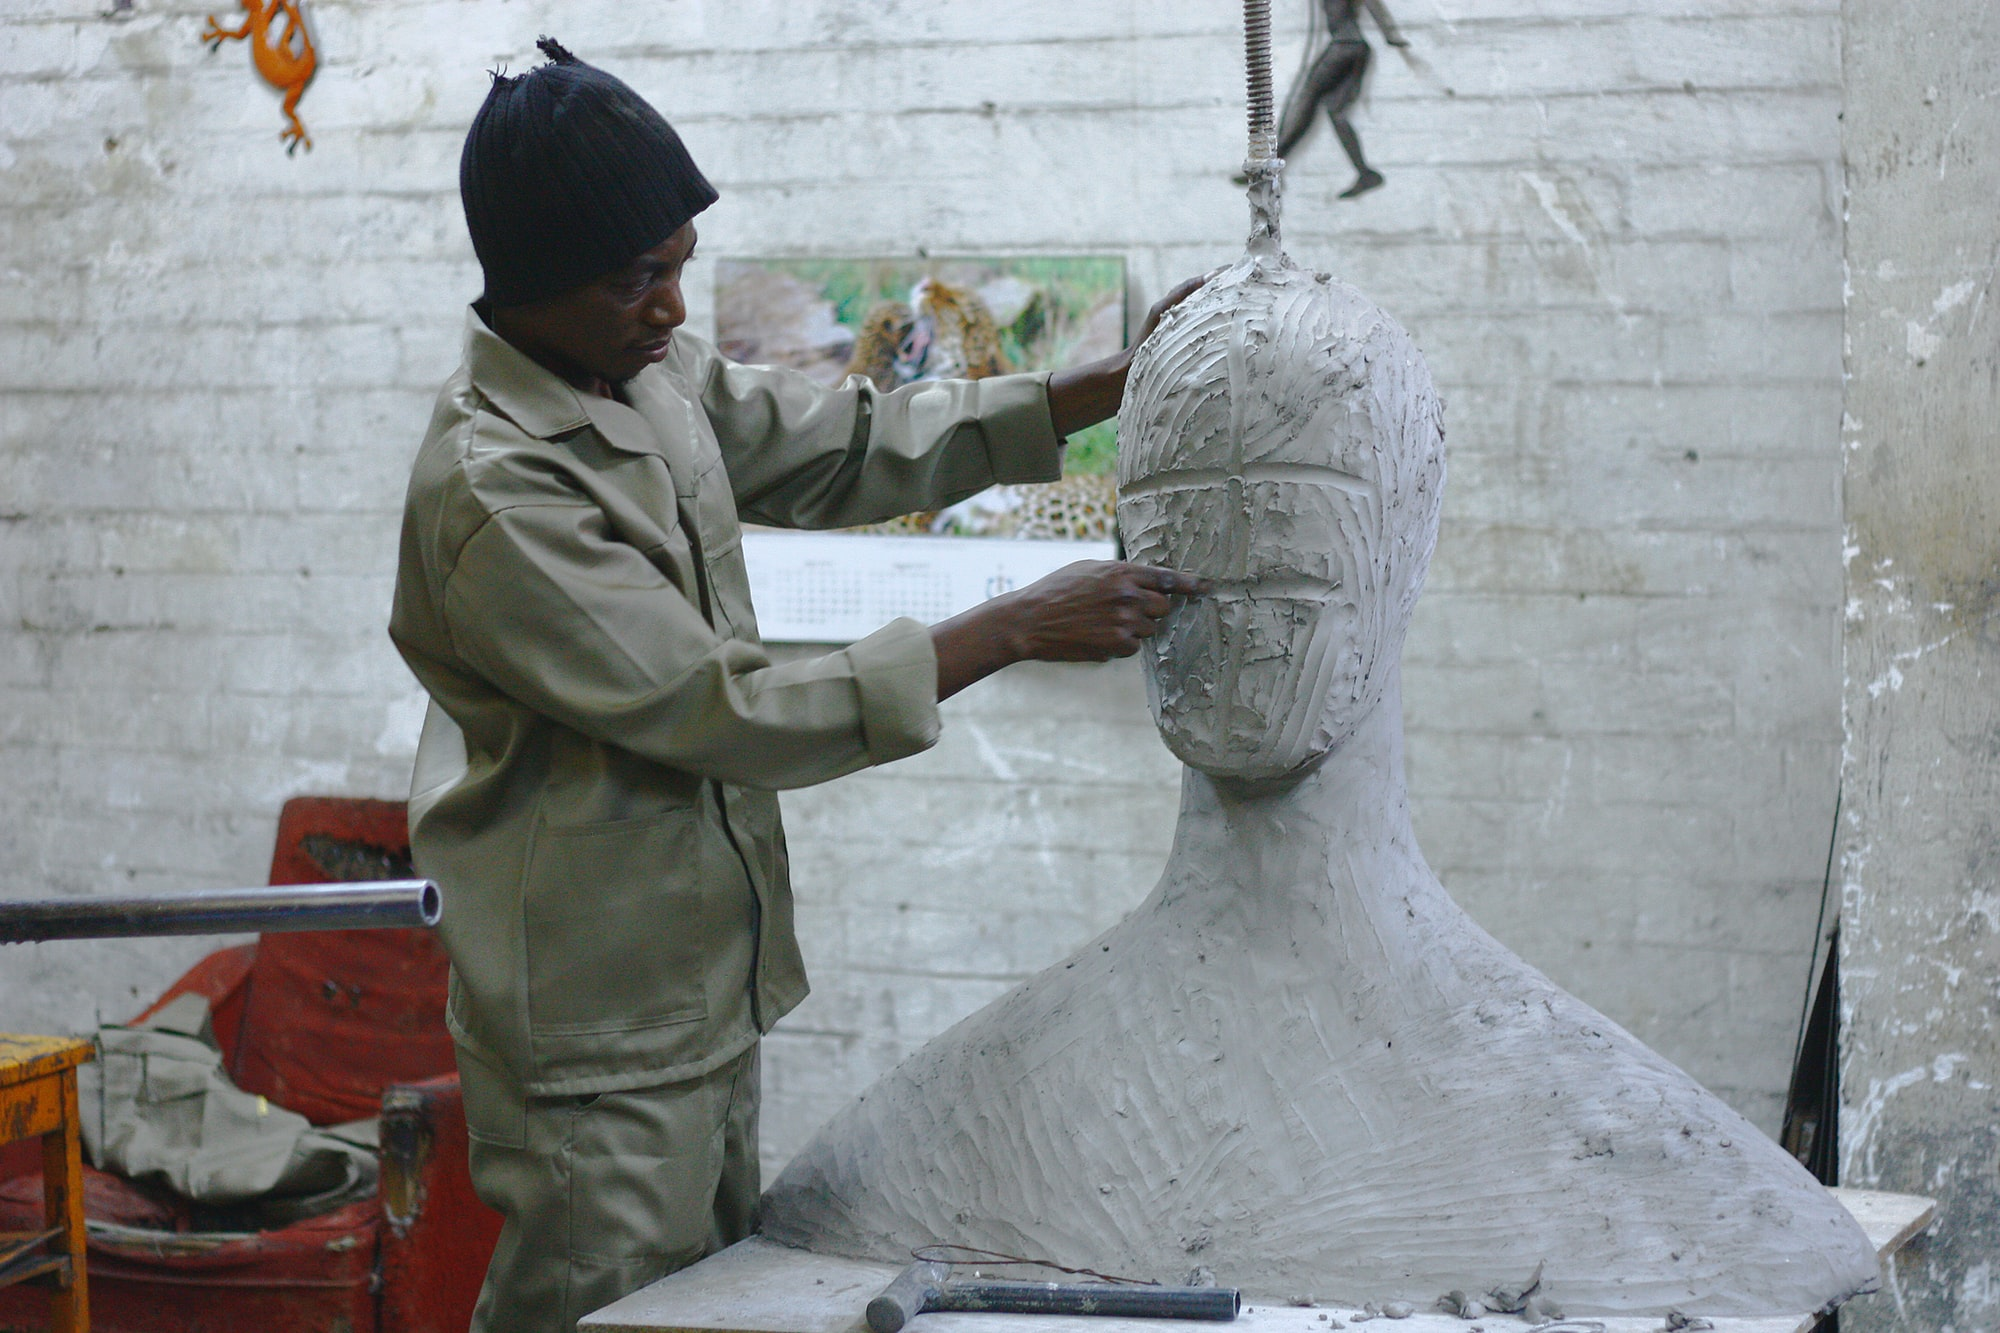 Sculptor and his work